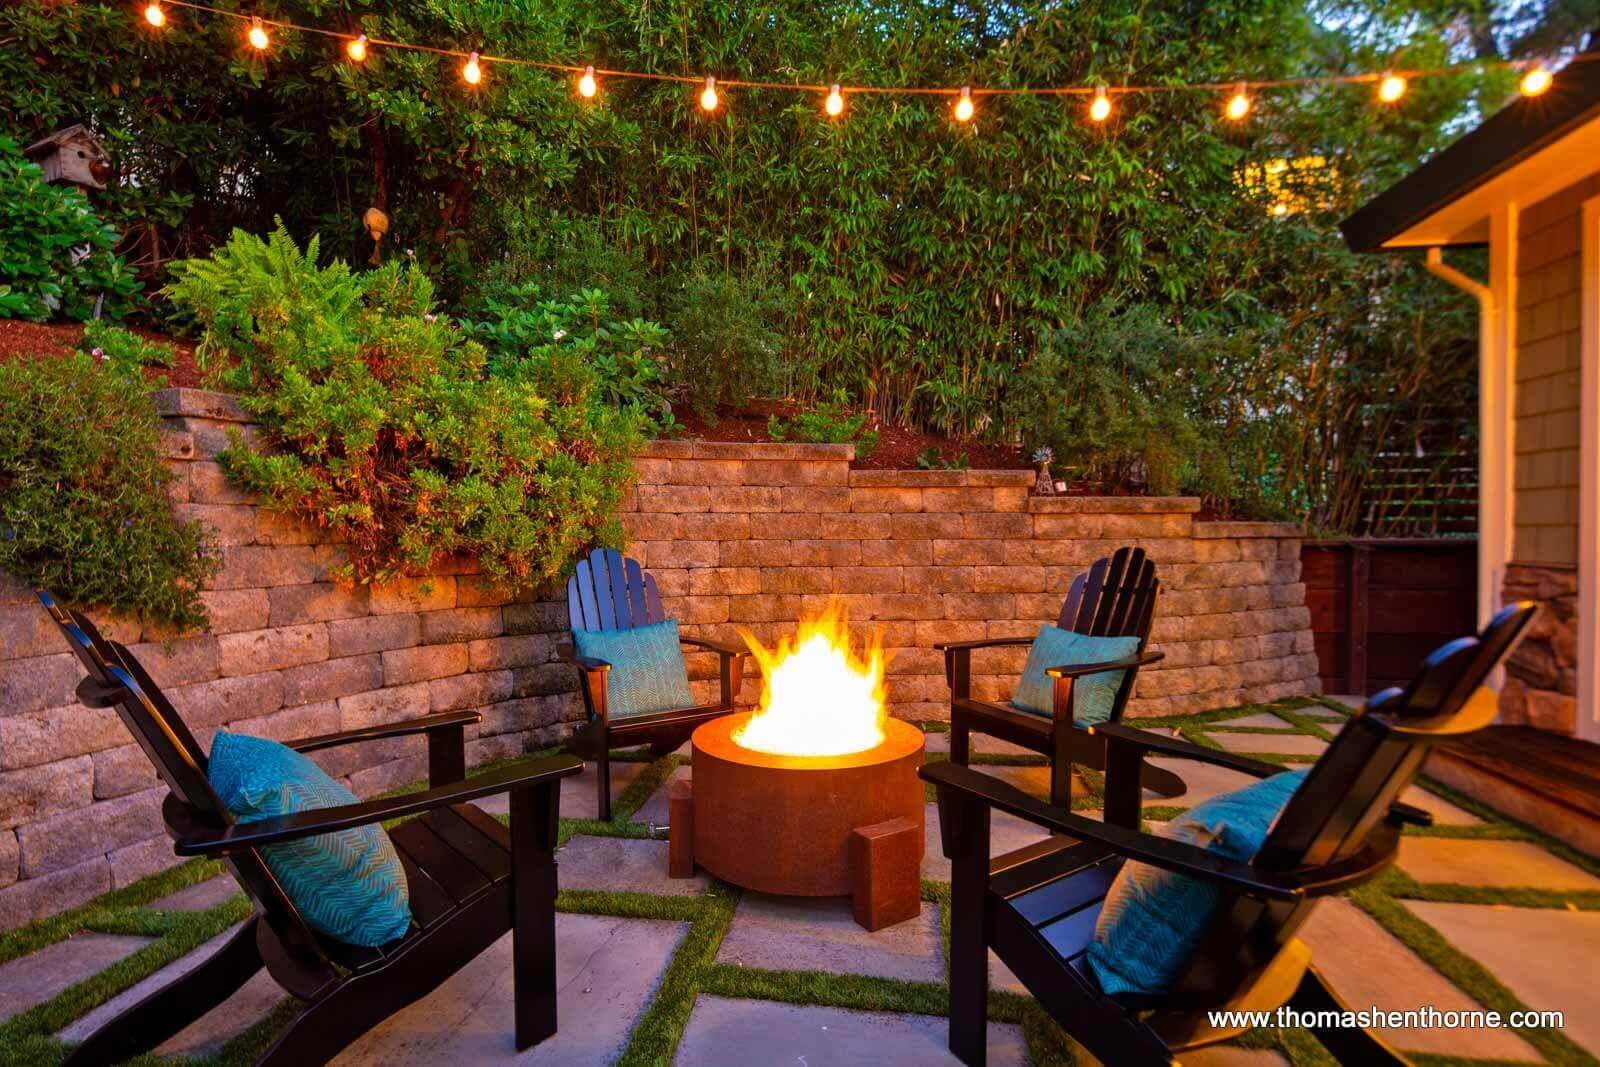 Fire Pit with Adirondack chairs surrounding